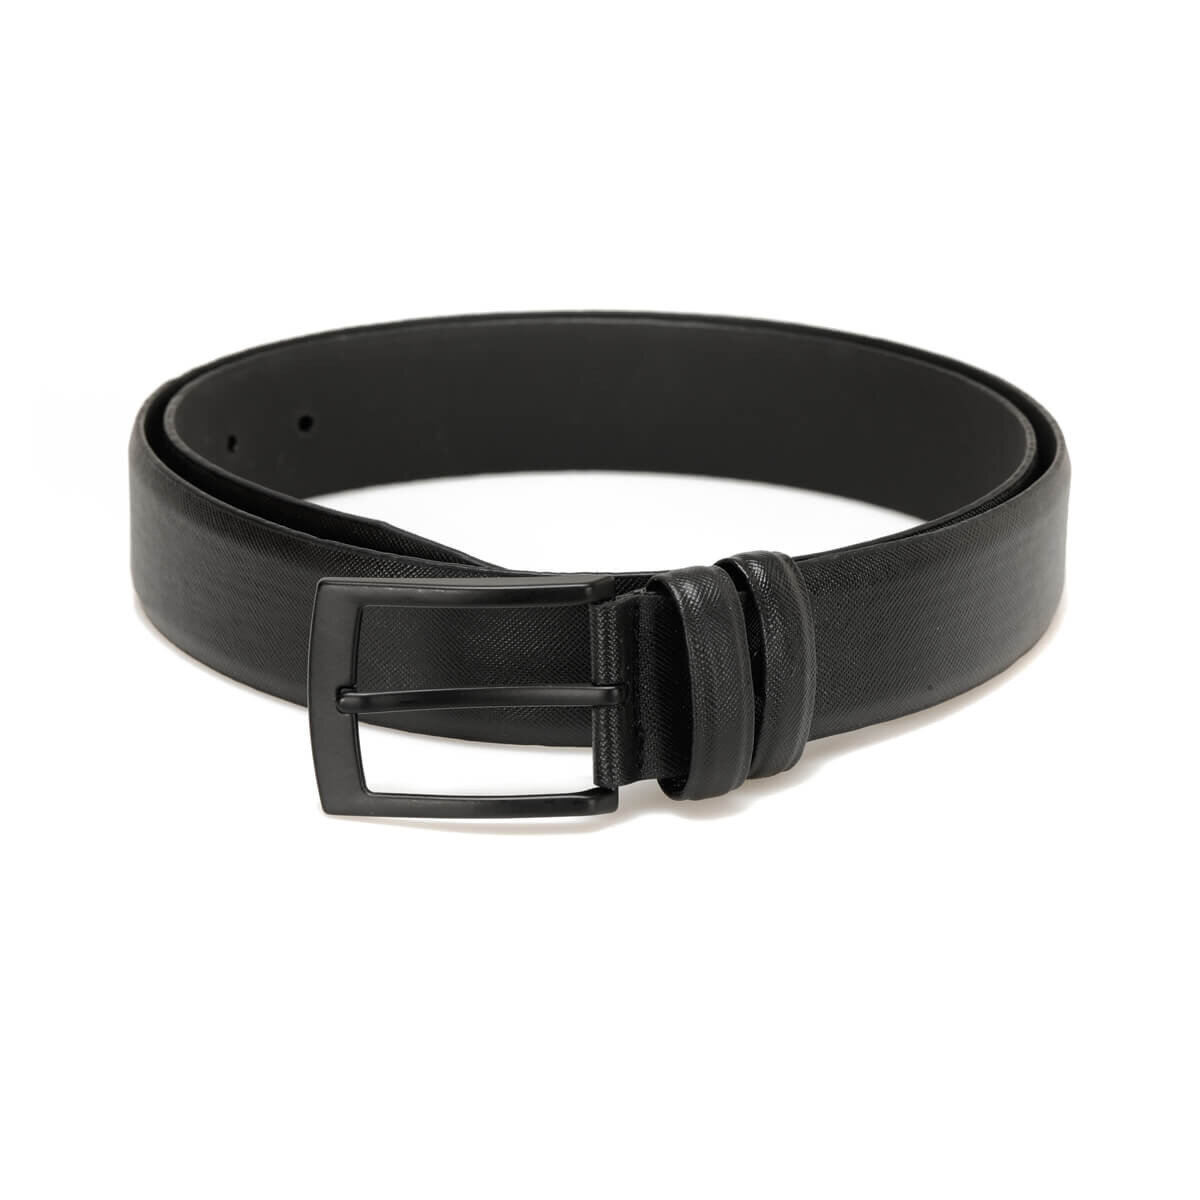 FLO MKNYL3408 Black Male Belt Oxide